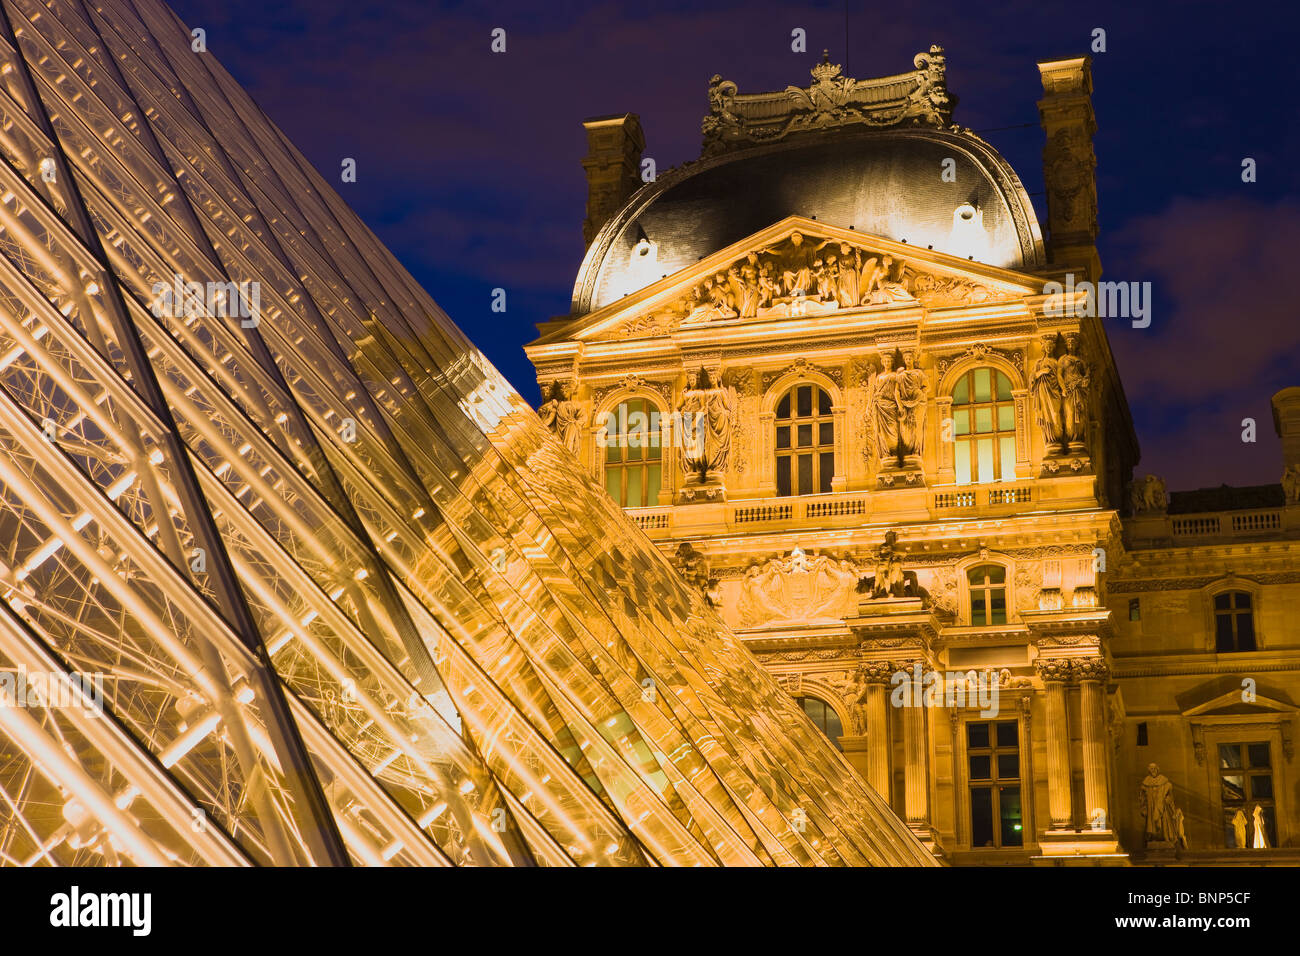 The Louvre Palace and Museums, Paris, France - Stock Image